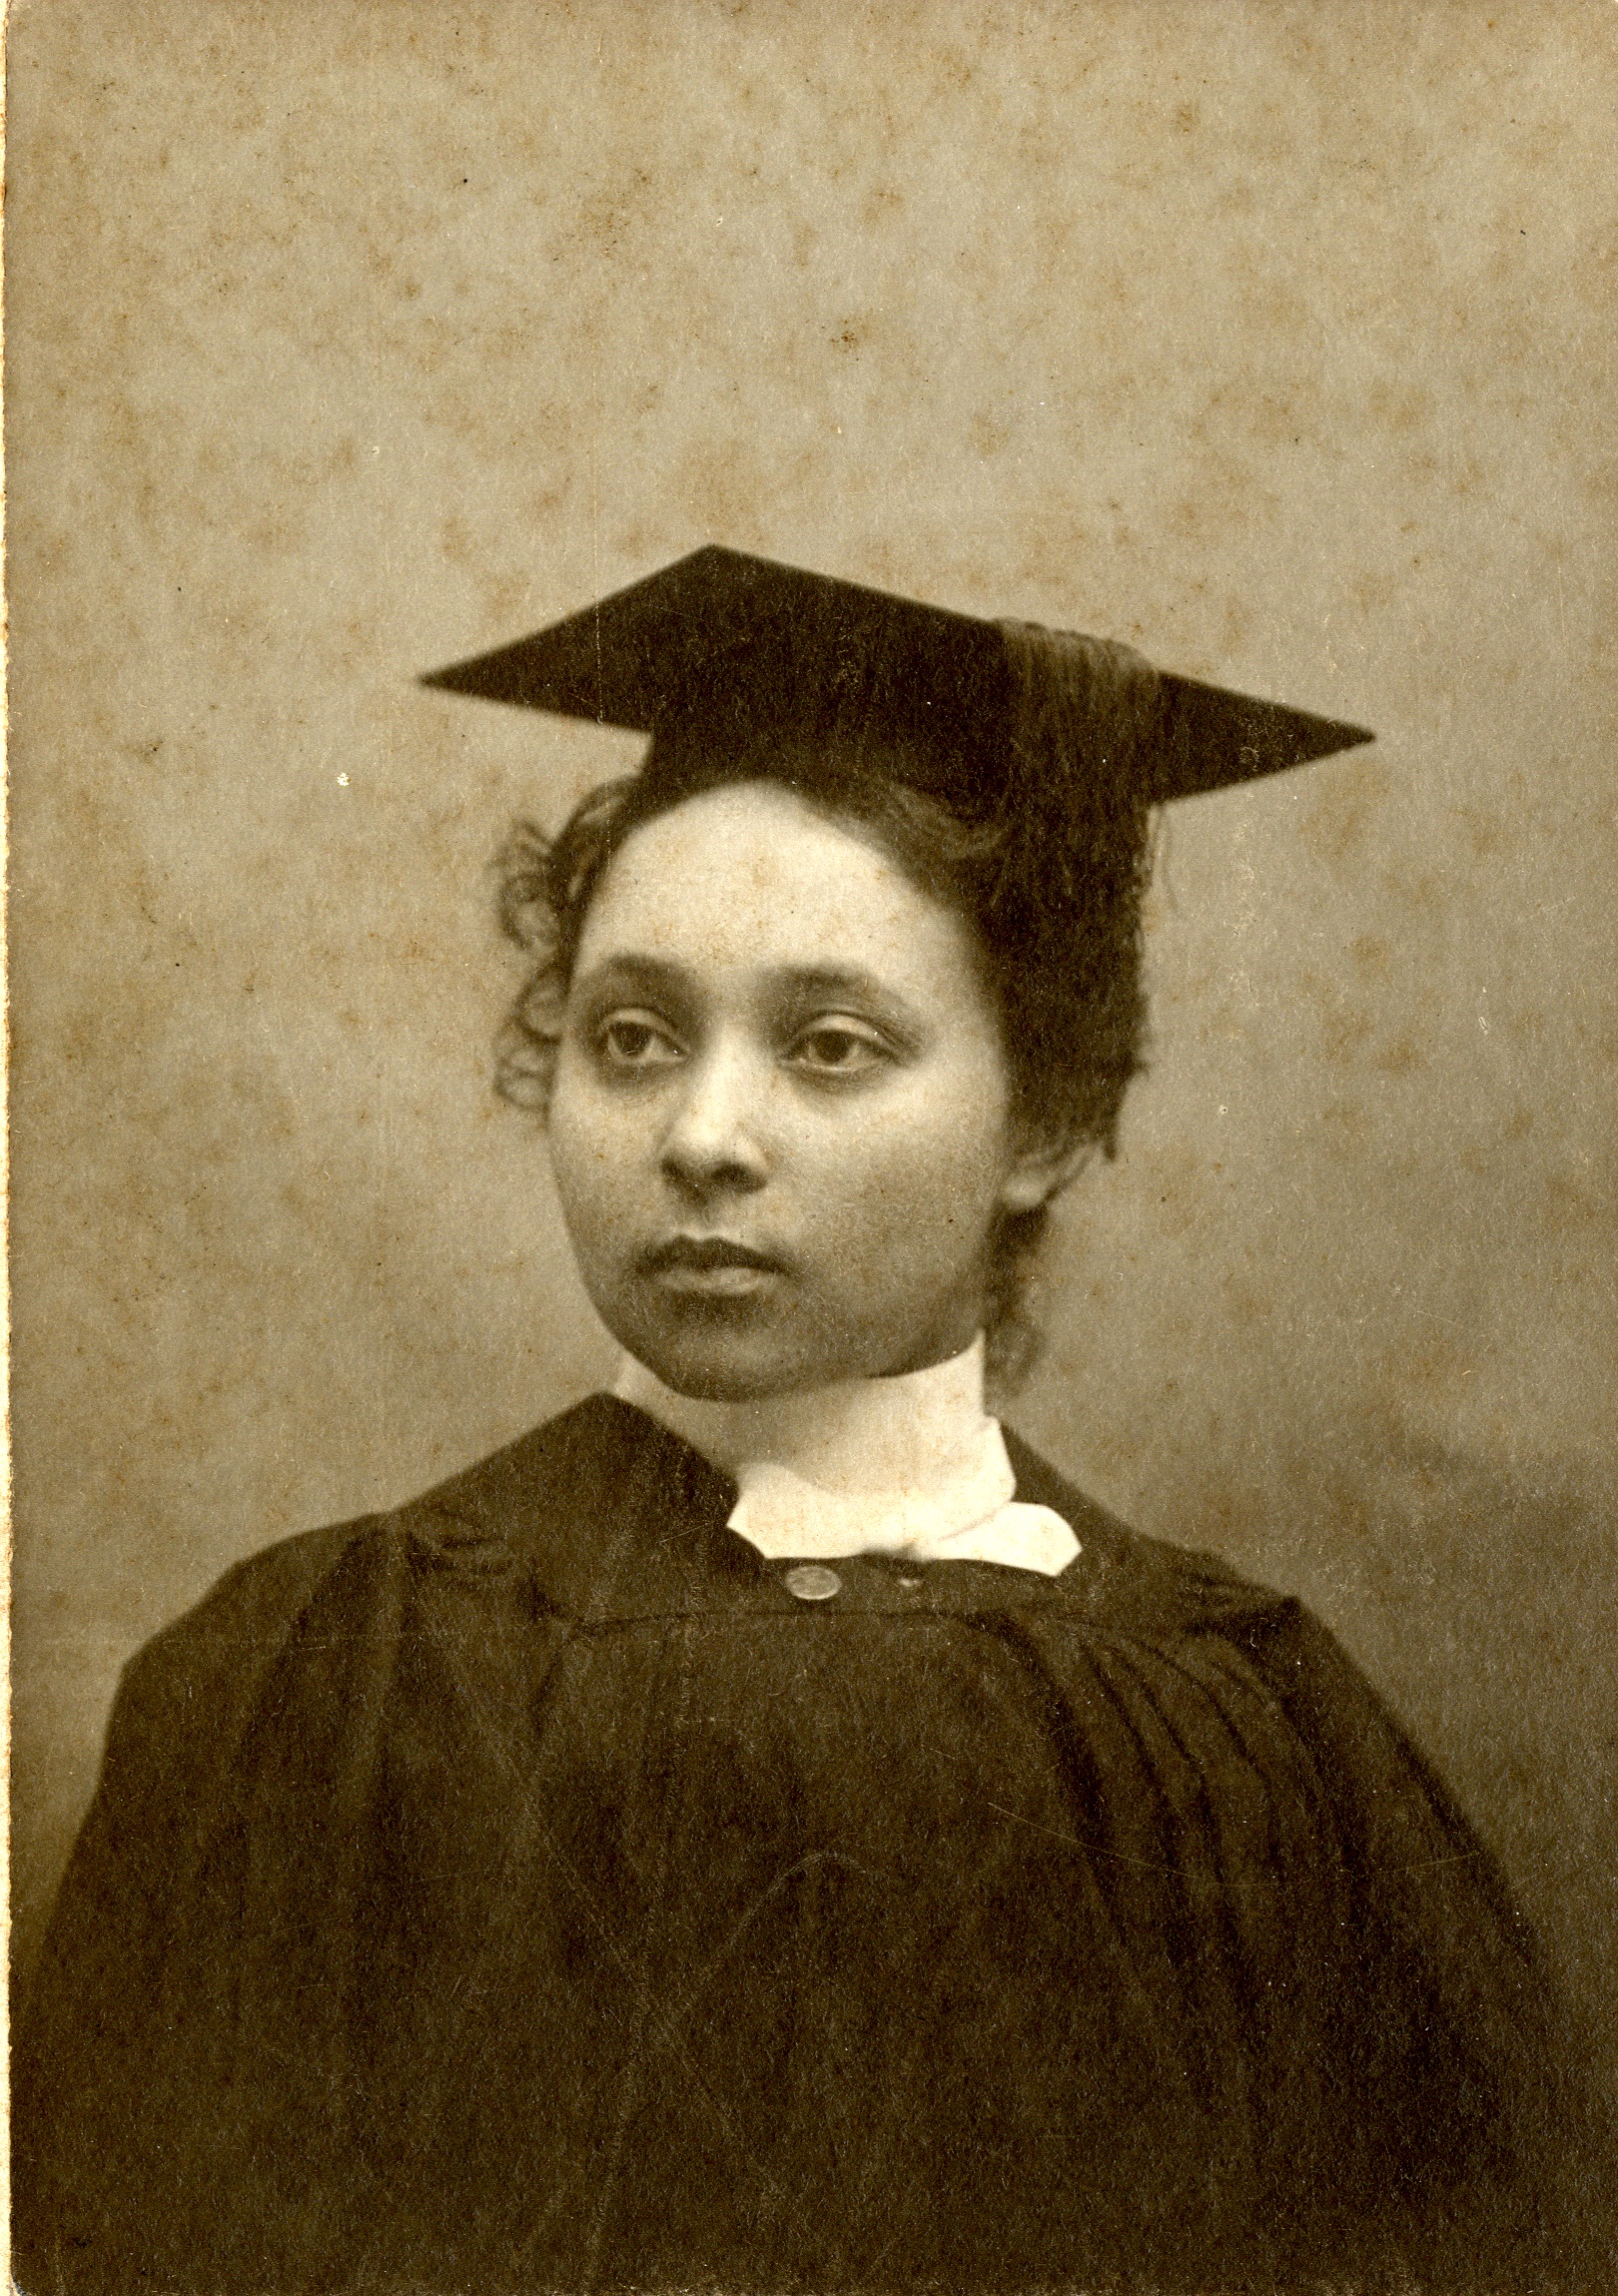 Mary Anderson 1899, Alumni Photo Files A9 1899-1890, Special Collections and Archives, Middlebury College